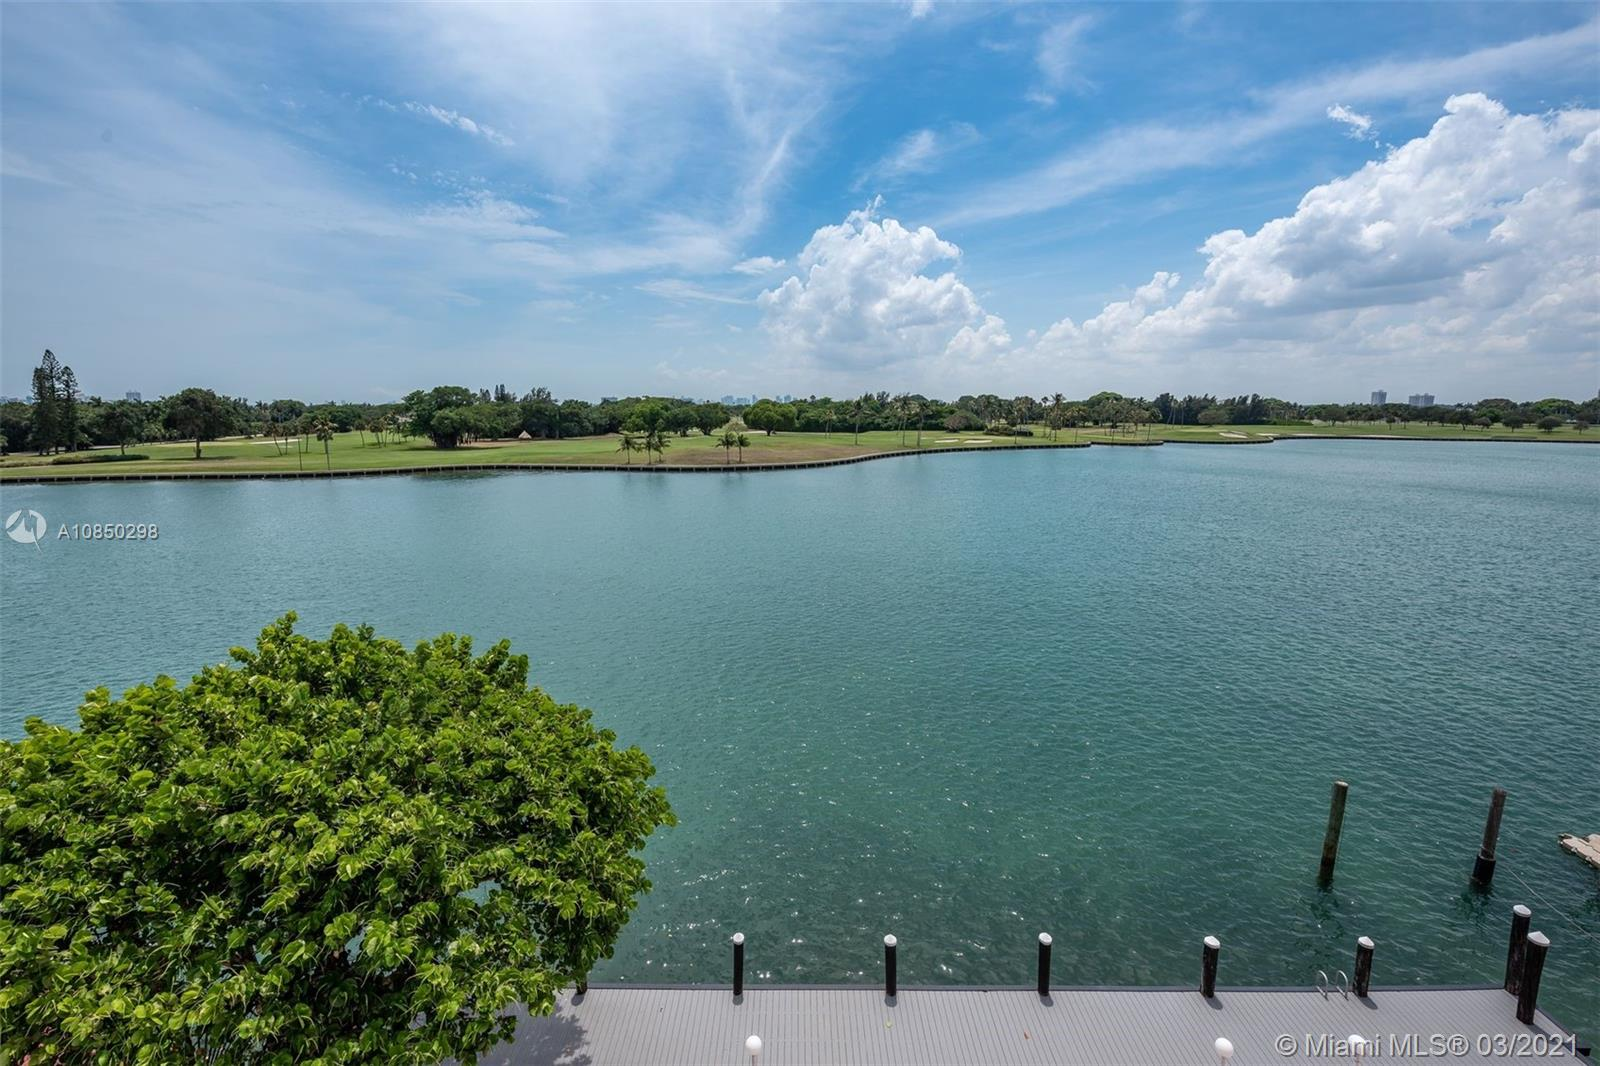 The views from this fully updated 2 BR/2 BA turnkey apartment will leave you speechless. From your bayfront balcony you can enjoy watching marine life in the bay, the serene beauty and vegetation of prestigious Indian Creek Island, and the Miami skyline. The unit features 1630 sf of interior living space, impact windows, Toto toilets, abundant closet space, tankless water-heater, video surveillance system, ventless washer/dryer, and a separate storage unit.  The boutique waterfront condominium with pool and boat slips is one of Bay Harbor Islands true gems. One of Miami's few walking neighborhoods with A-rated K-8th grade school, 15 min. to Bal Harbour Shops and the beach, local shops, restaurants and houses of worship. Ranked 11th amongst the SafeWise 20 Safest Cities in Florida.